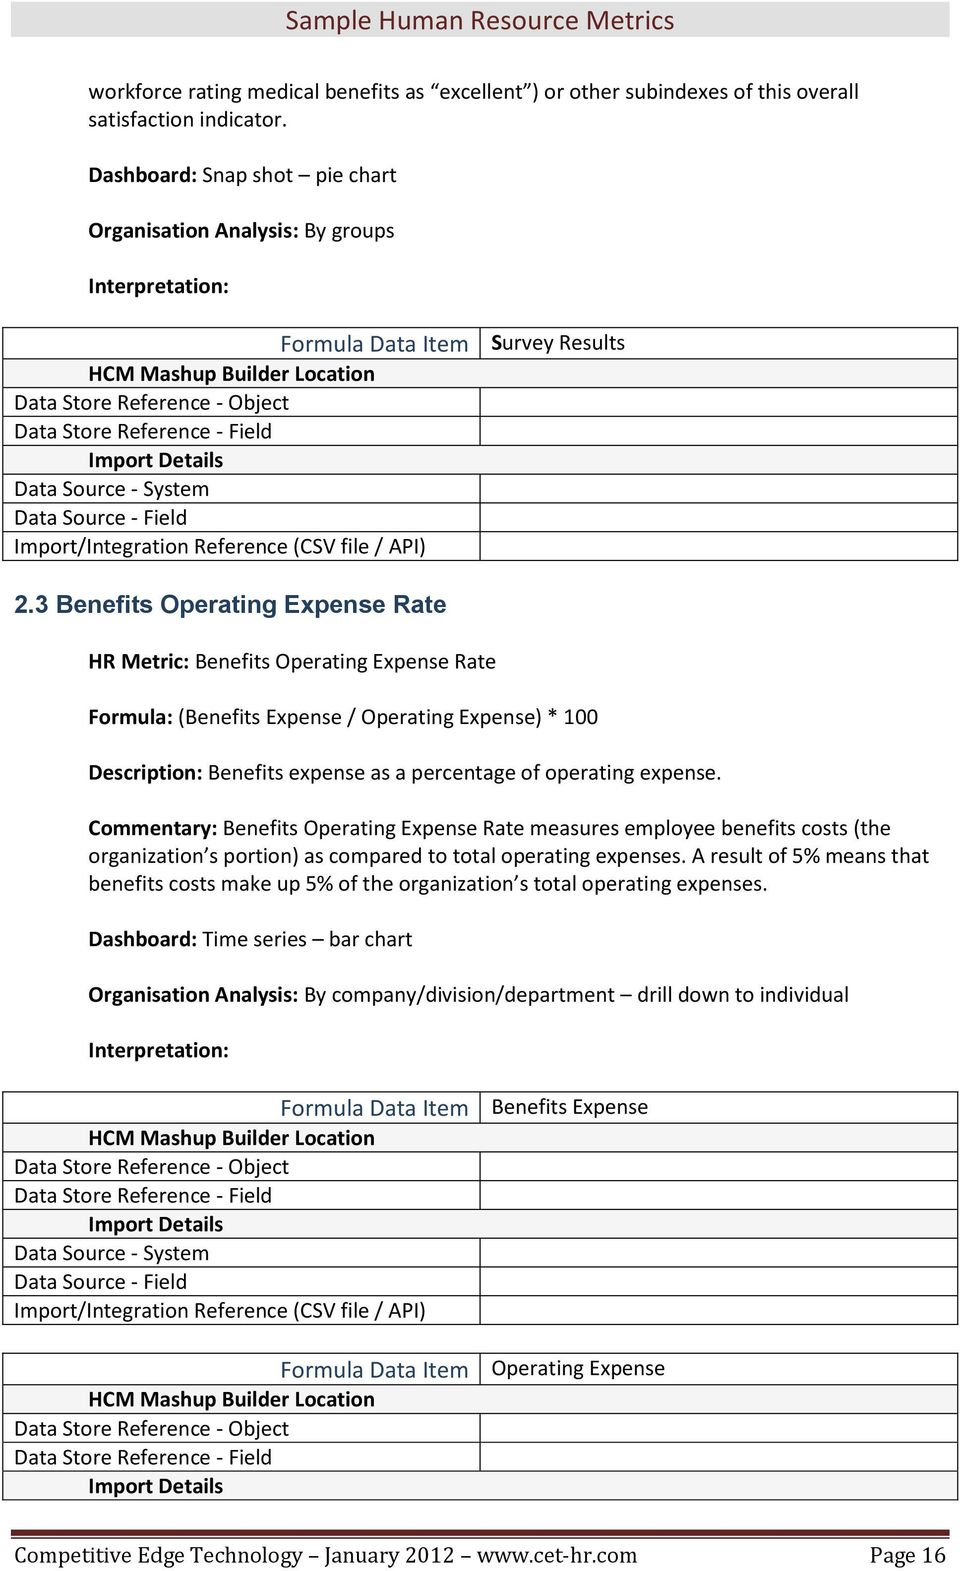 3 Benefits Operating Expense Rate HR Metric: Benefits Operating Expense Rate Formula: (Benefits Expense / Operating Expense) * 100 Description: Benefits expense as a percentage of operating